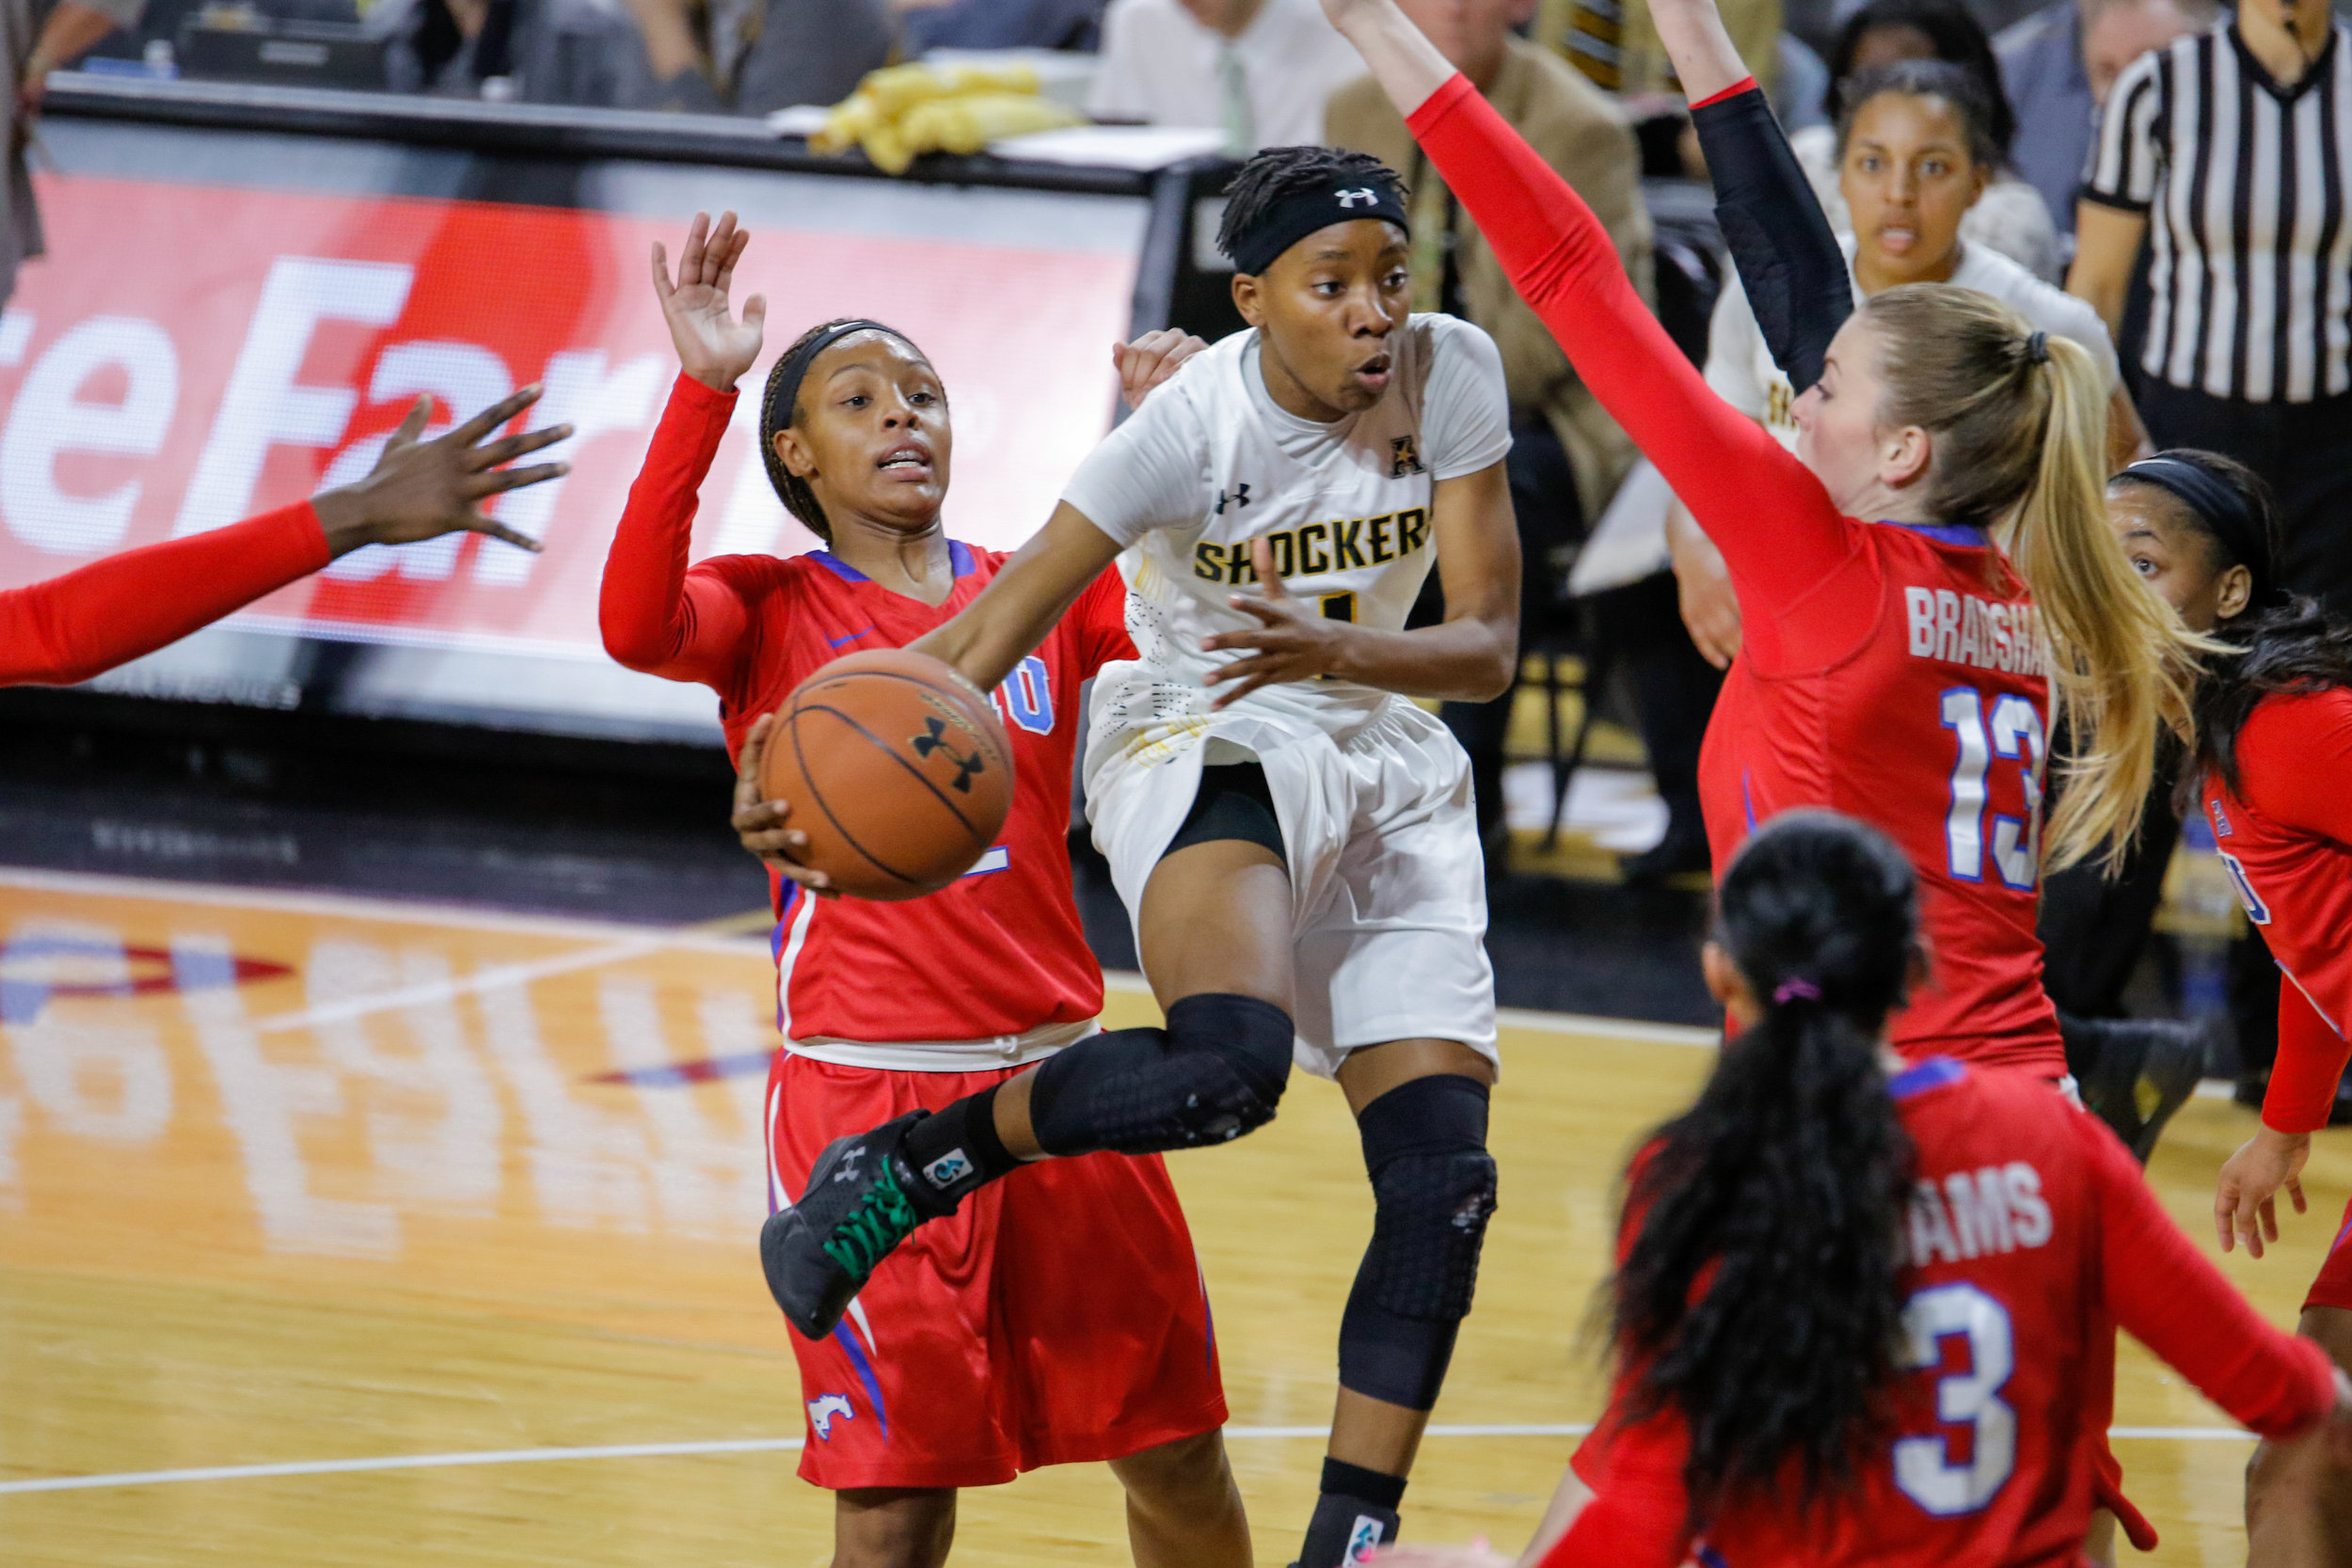 Wichita State's Keke Thompson passes while heavily guarded against SMU on January 16, 2018 at Charles Koch Arena.